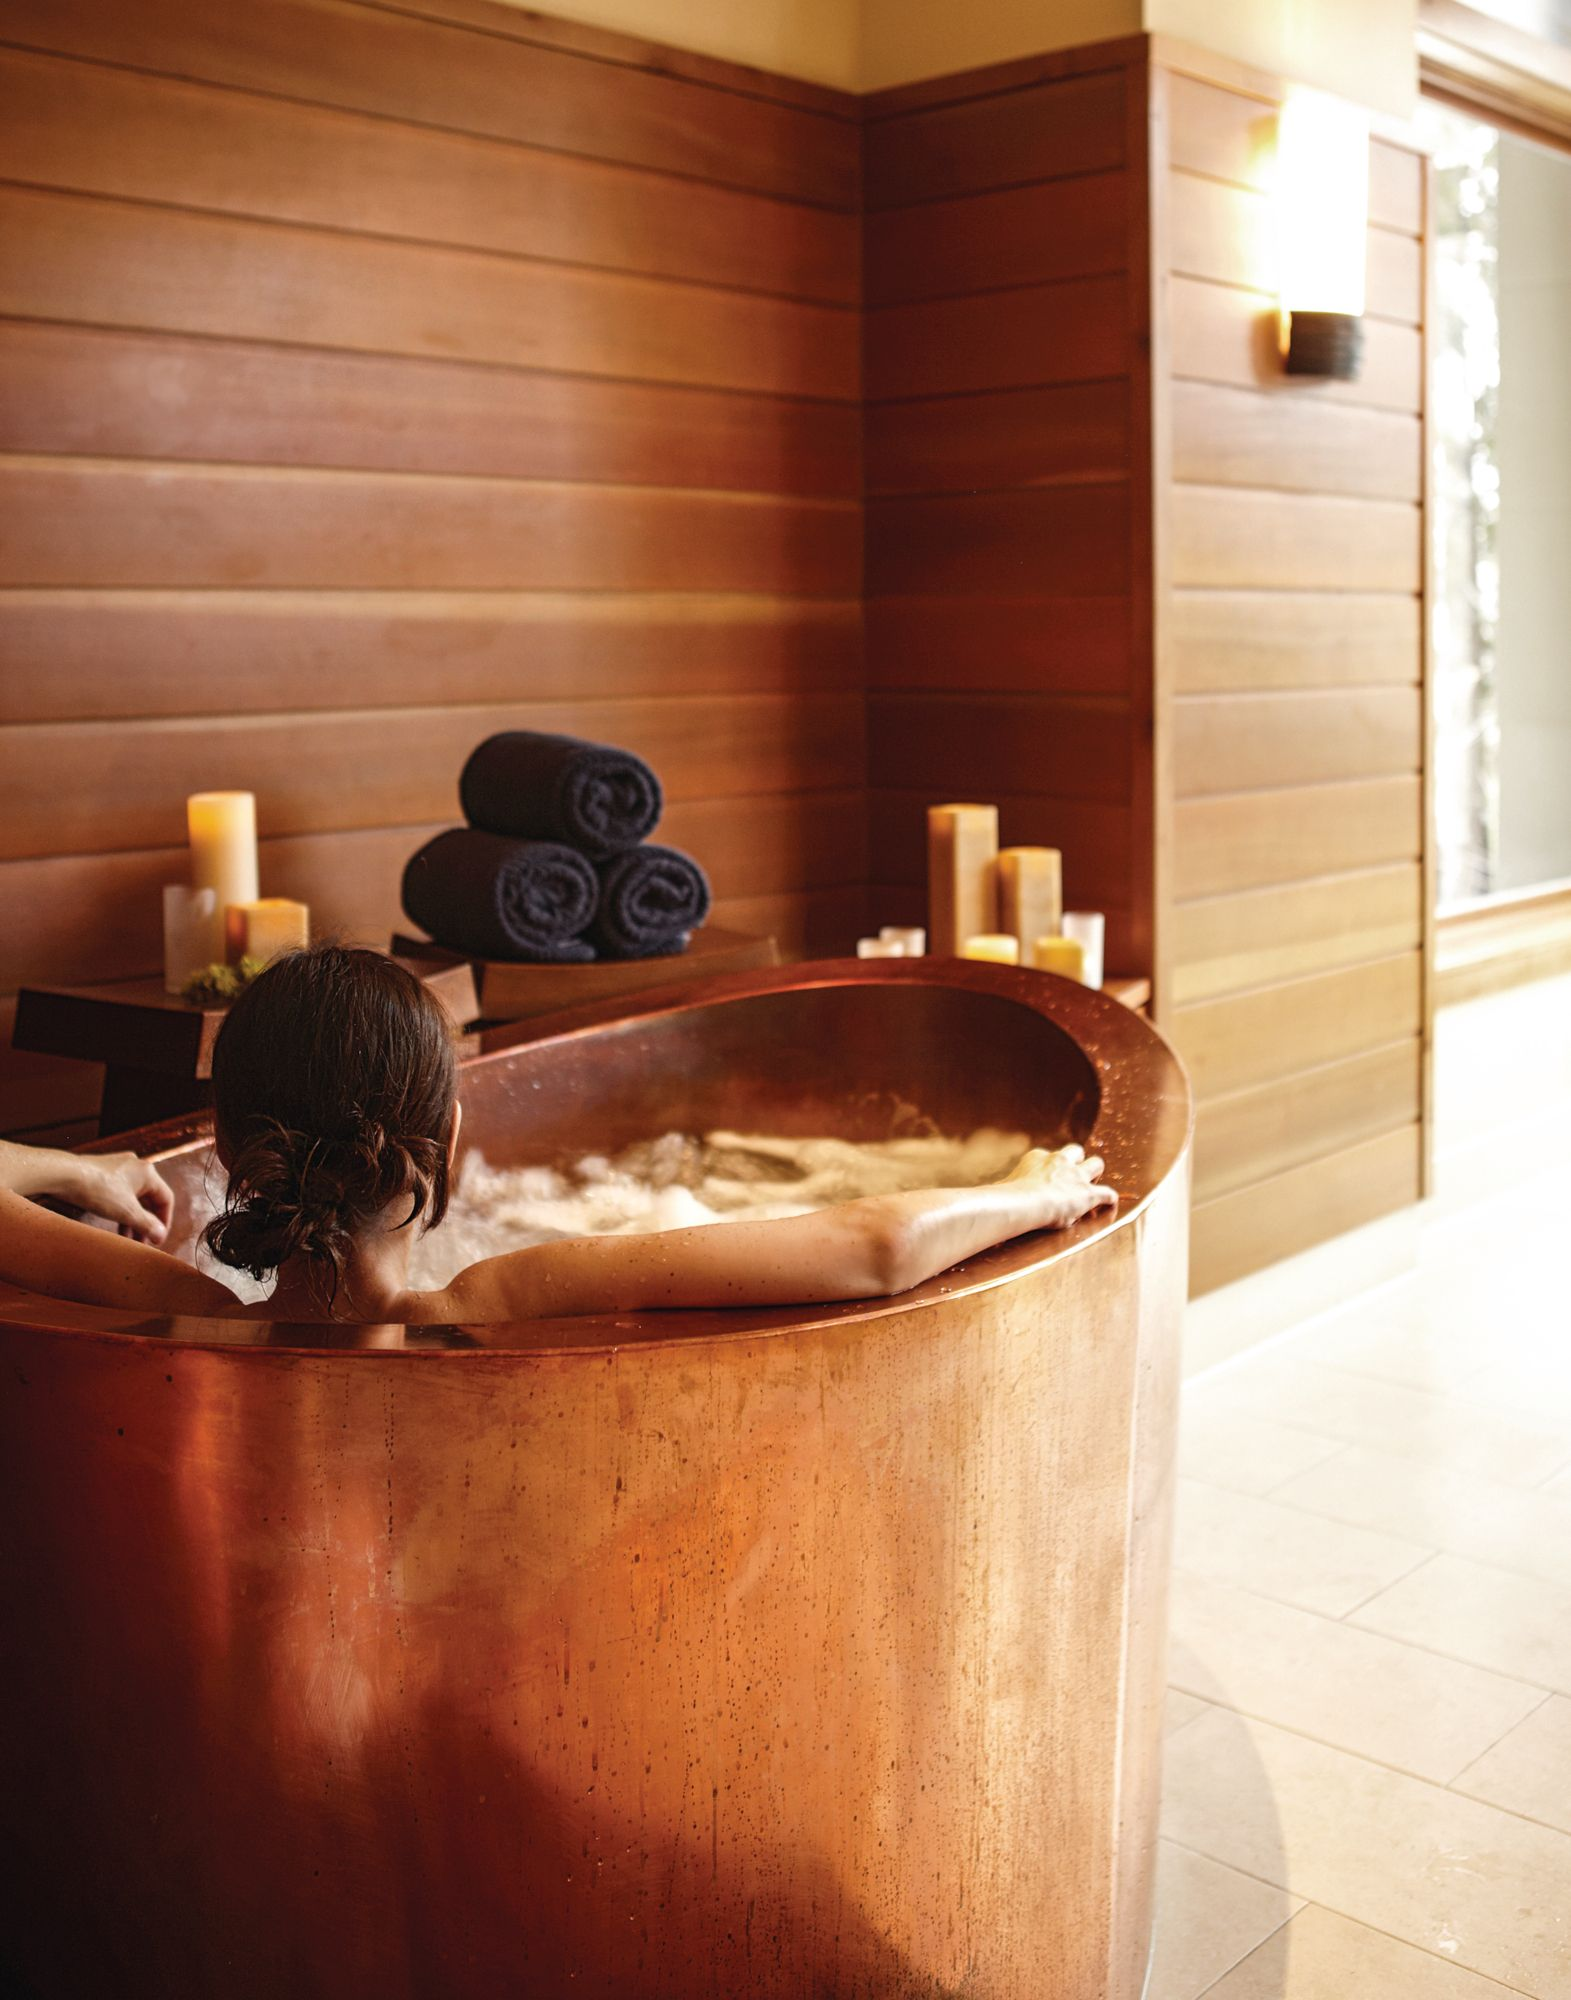 3 Wellness Brands That Can Help You Achieve a Luxurious Hotel Spa Experience at Home